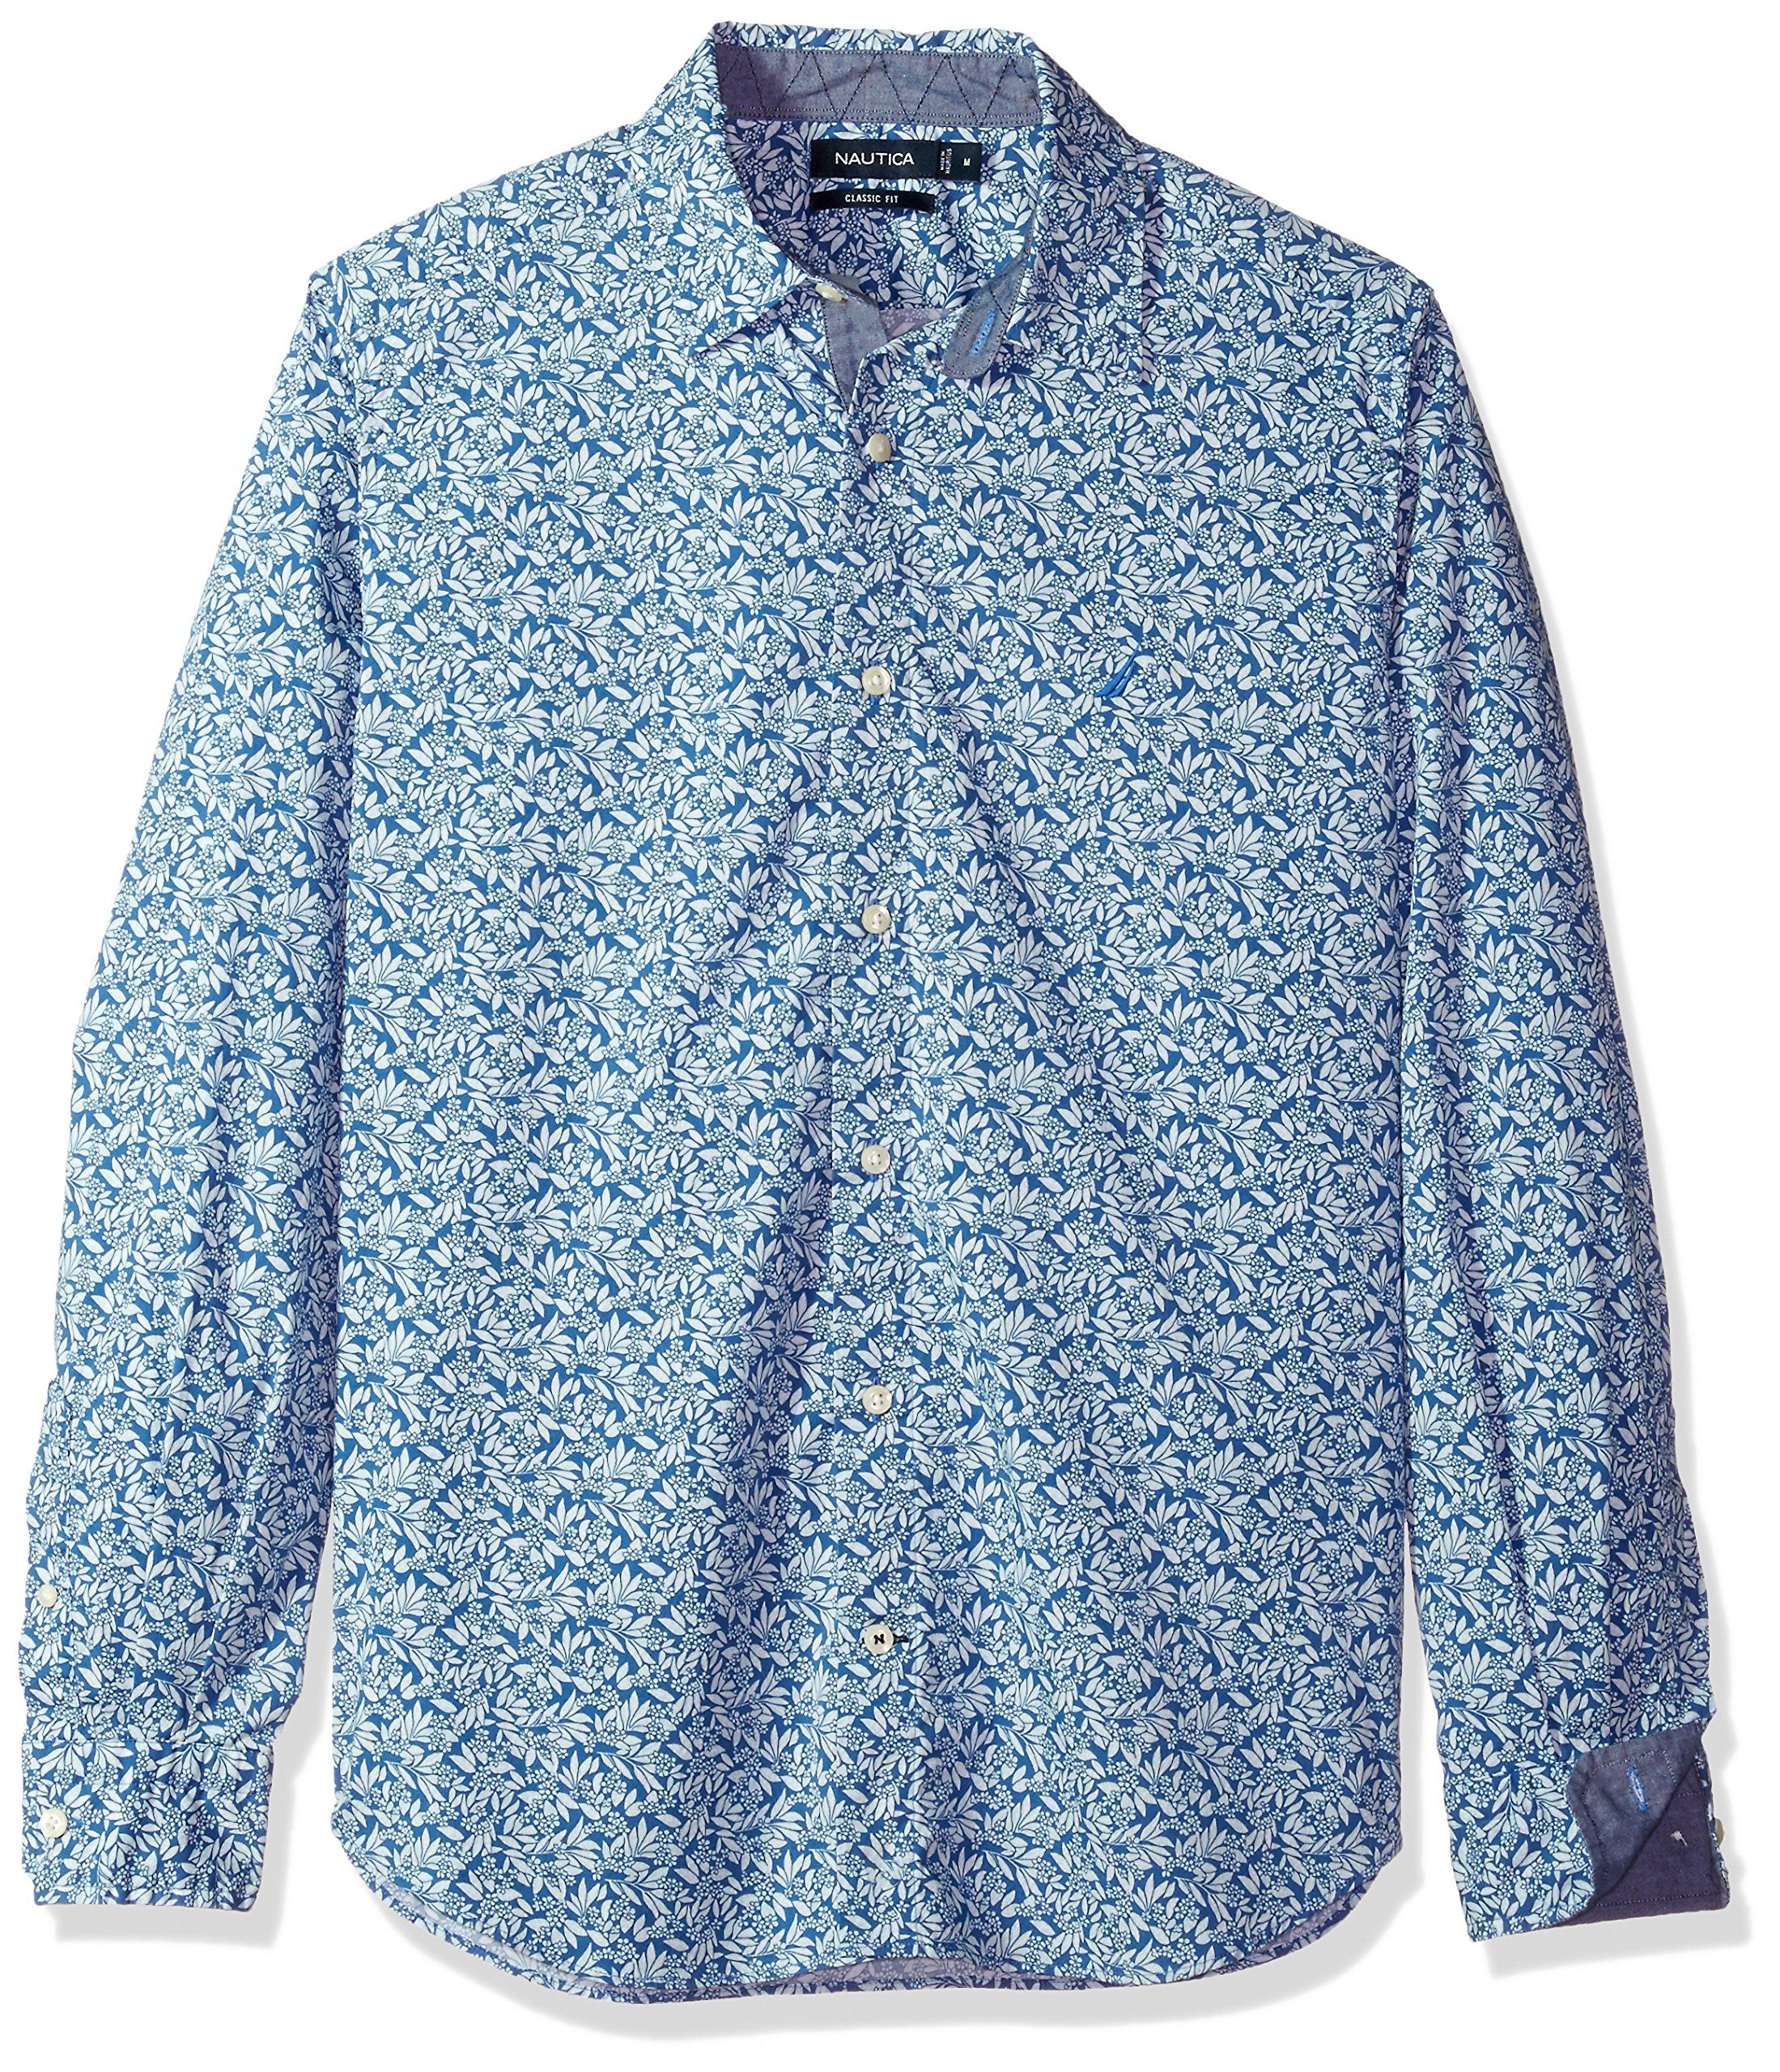 Delft H&m Nautica Mens Classic Fit Stretch Printed Long Sleeve Button Down